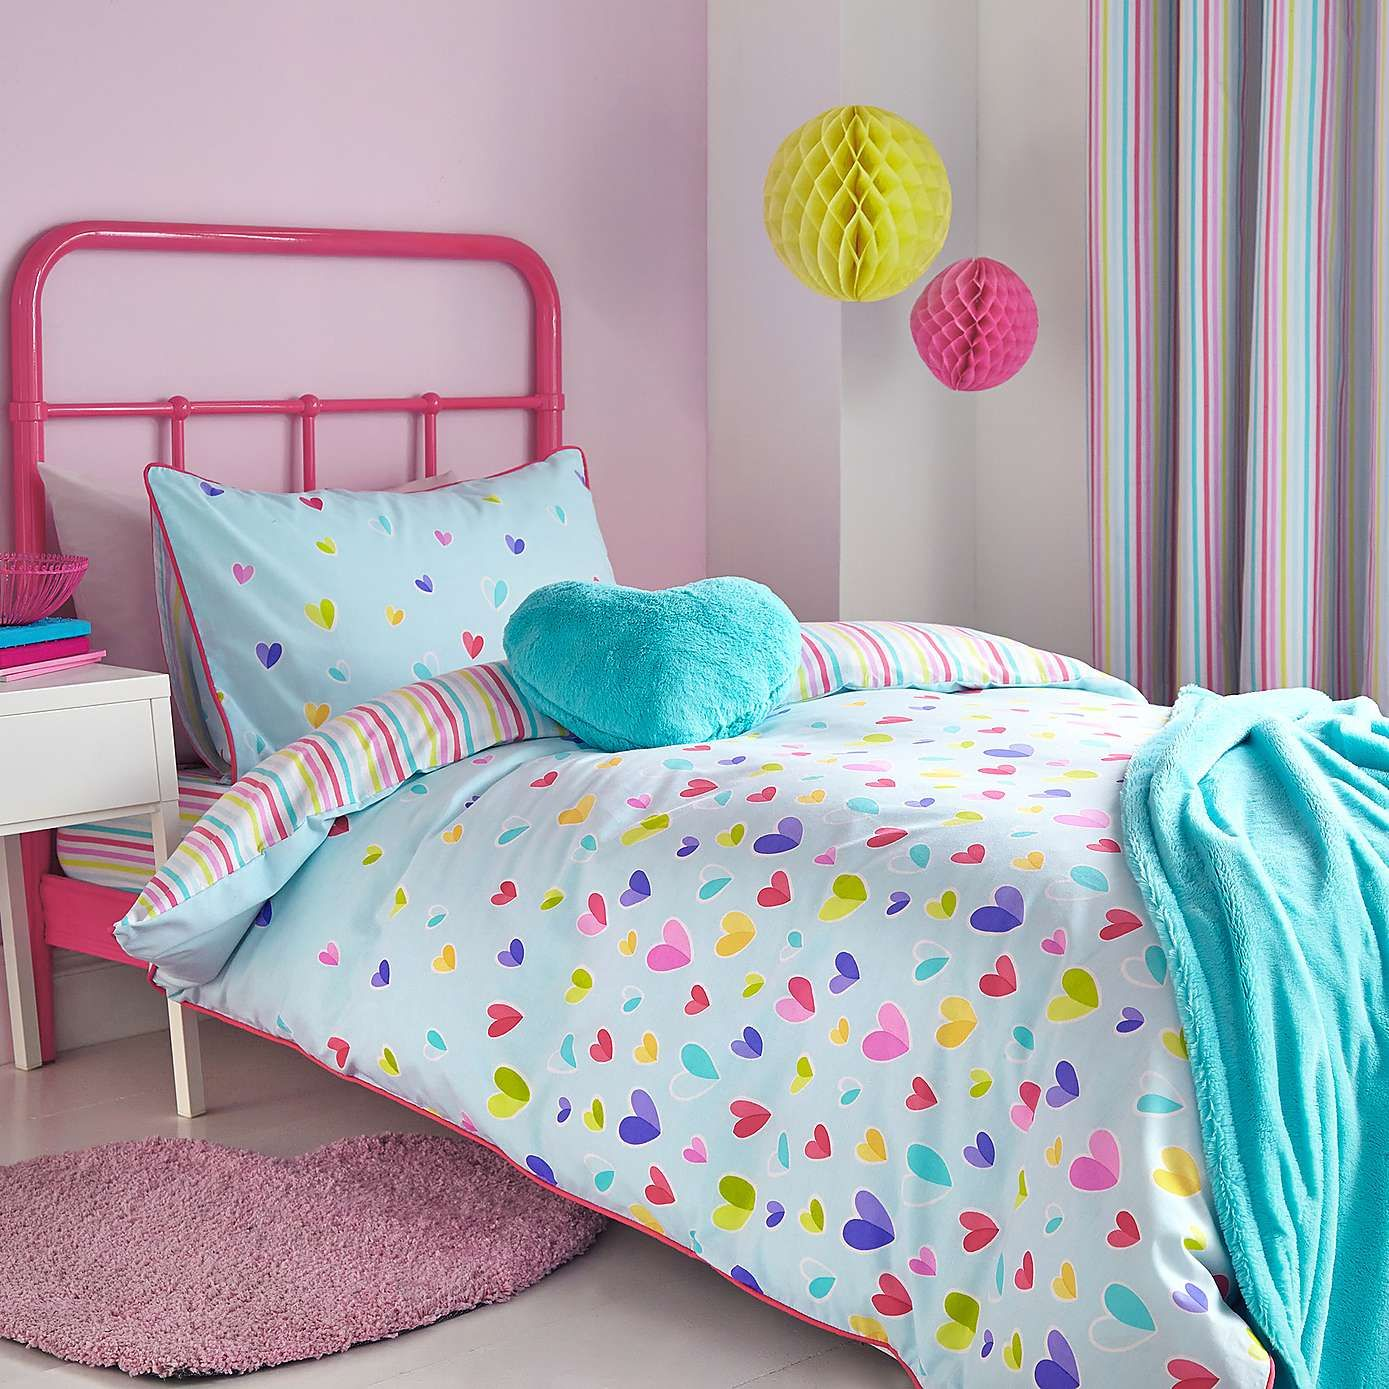 Kids Bedroom Linen kids scattered hearts 3d cushion | bed linen, duvet and linens